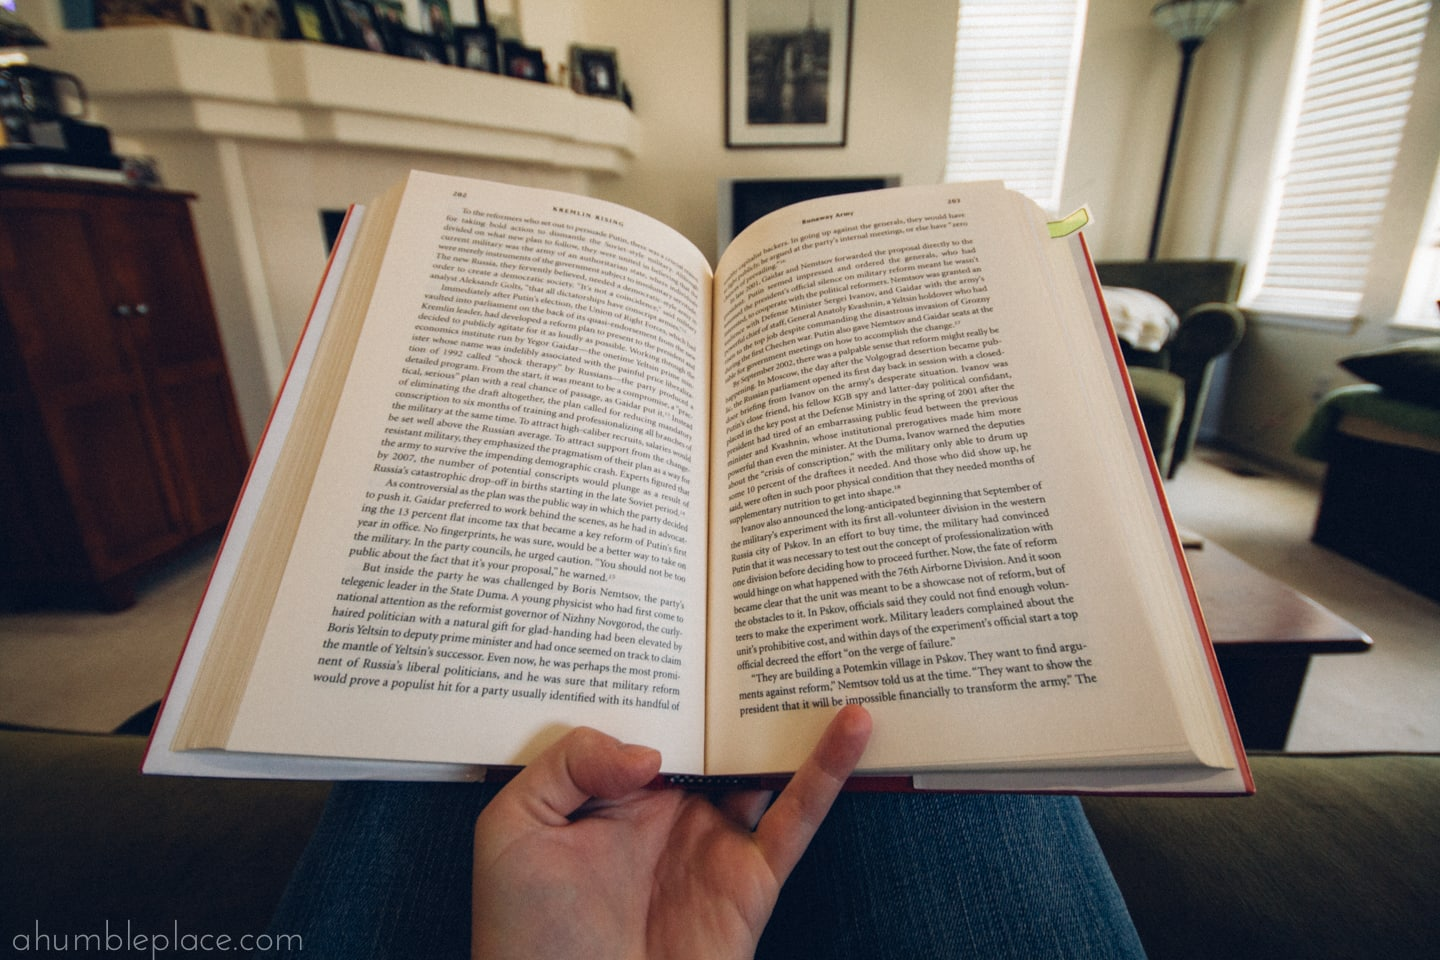 The love of learning the sequestered nooks and all the sweet serenity of books. - ahumbleplace.com